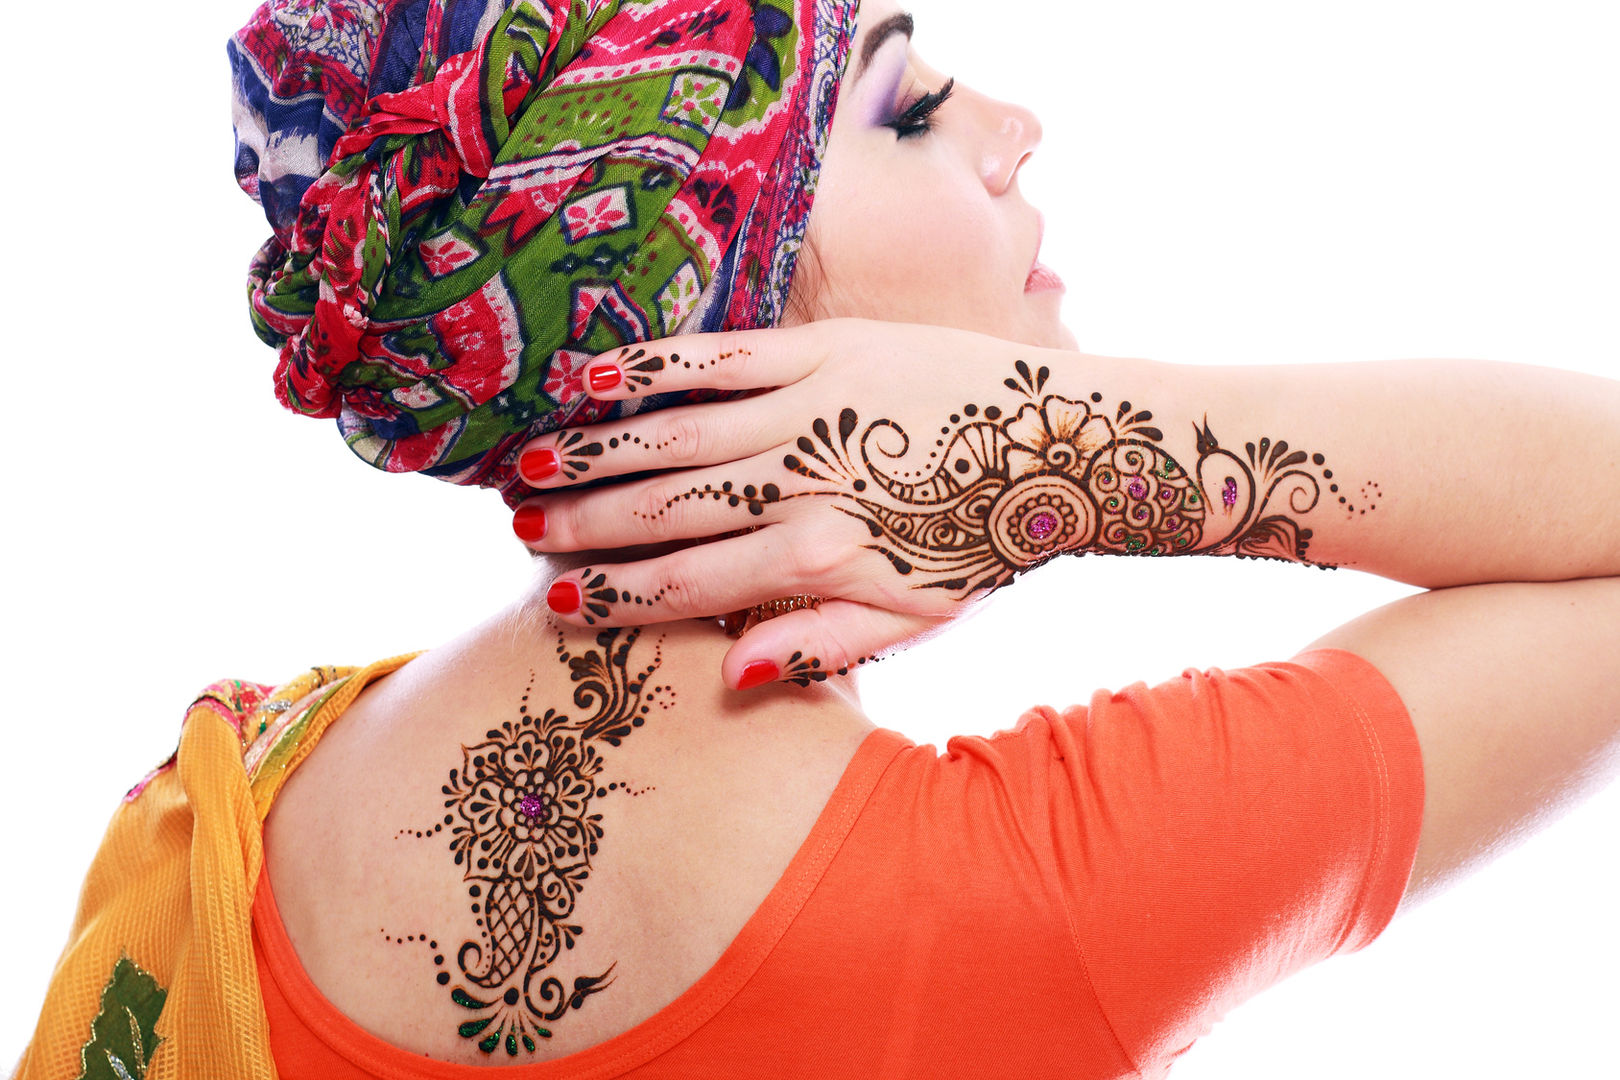 Islamic Fashion Influences Mainstream Fashion